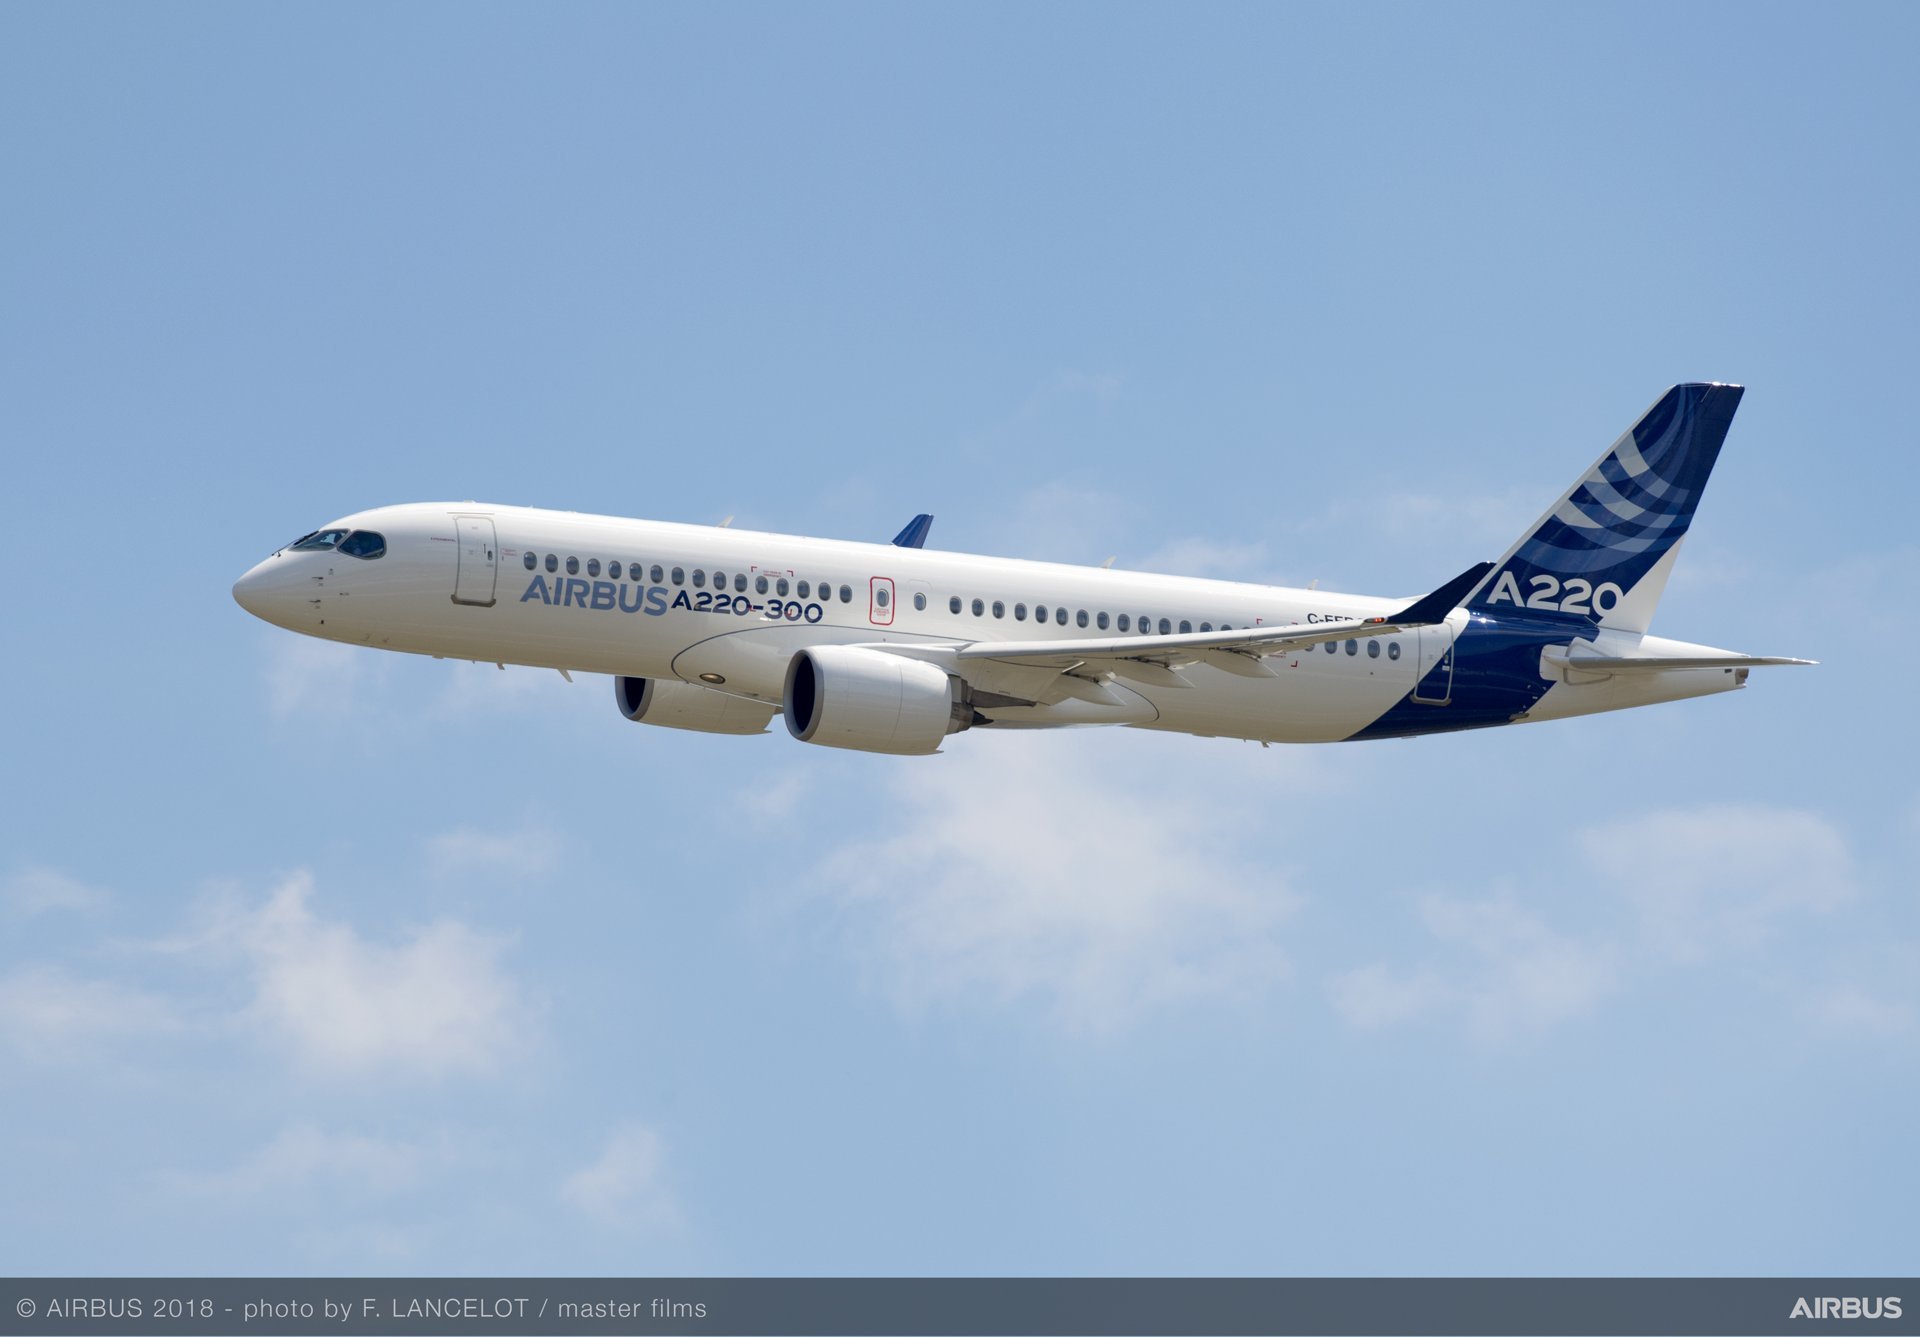 Production of the A220 Family aircraft, seen here in the larger A220-300 variant, for Airbus' U.S.-based customers will take place at the company's new assembly line in Mobile, Alabama